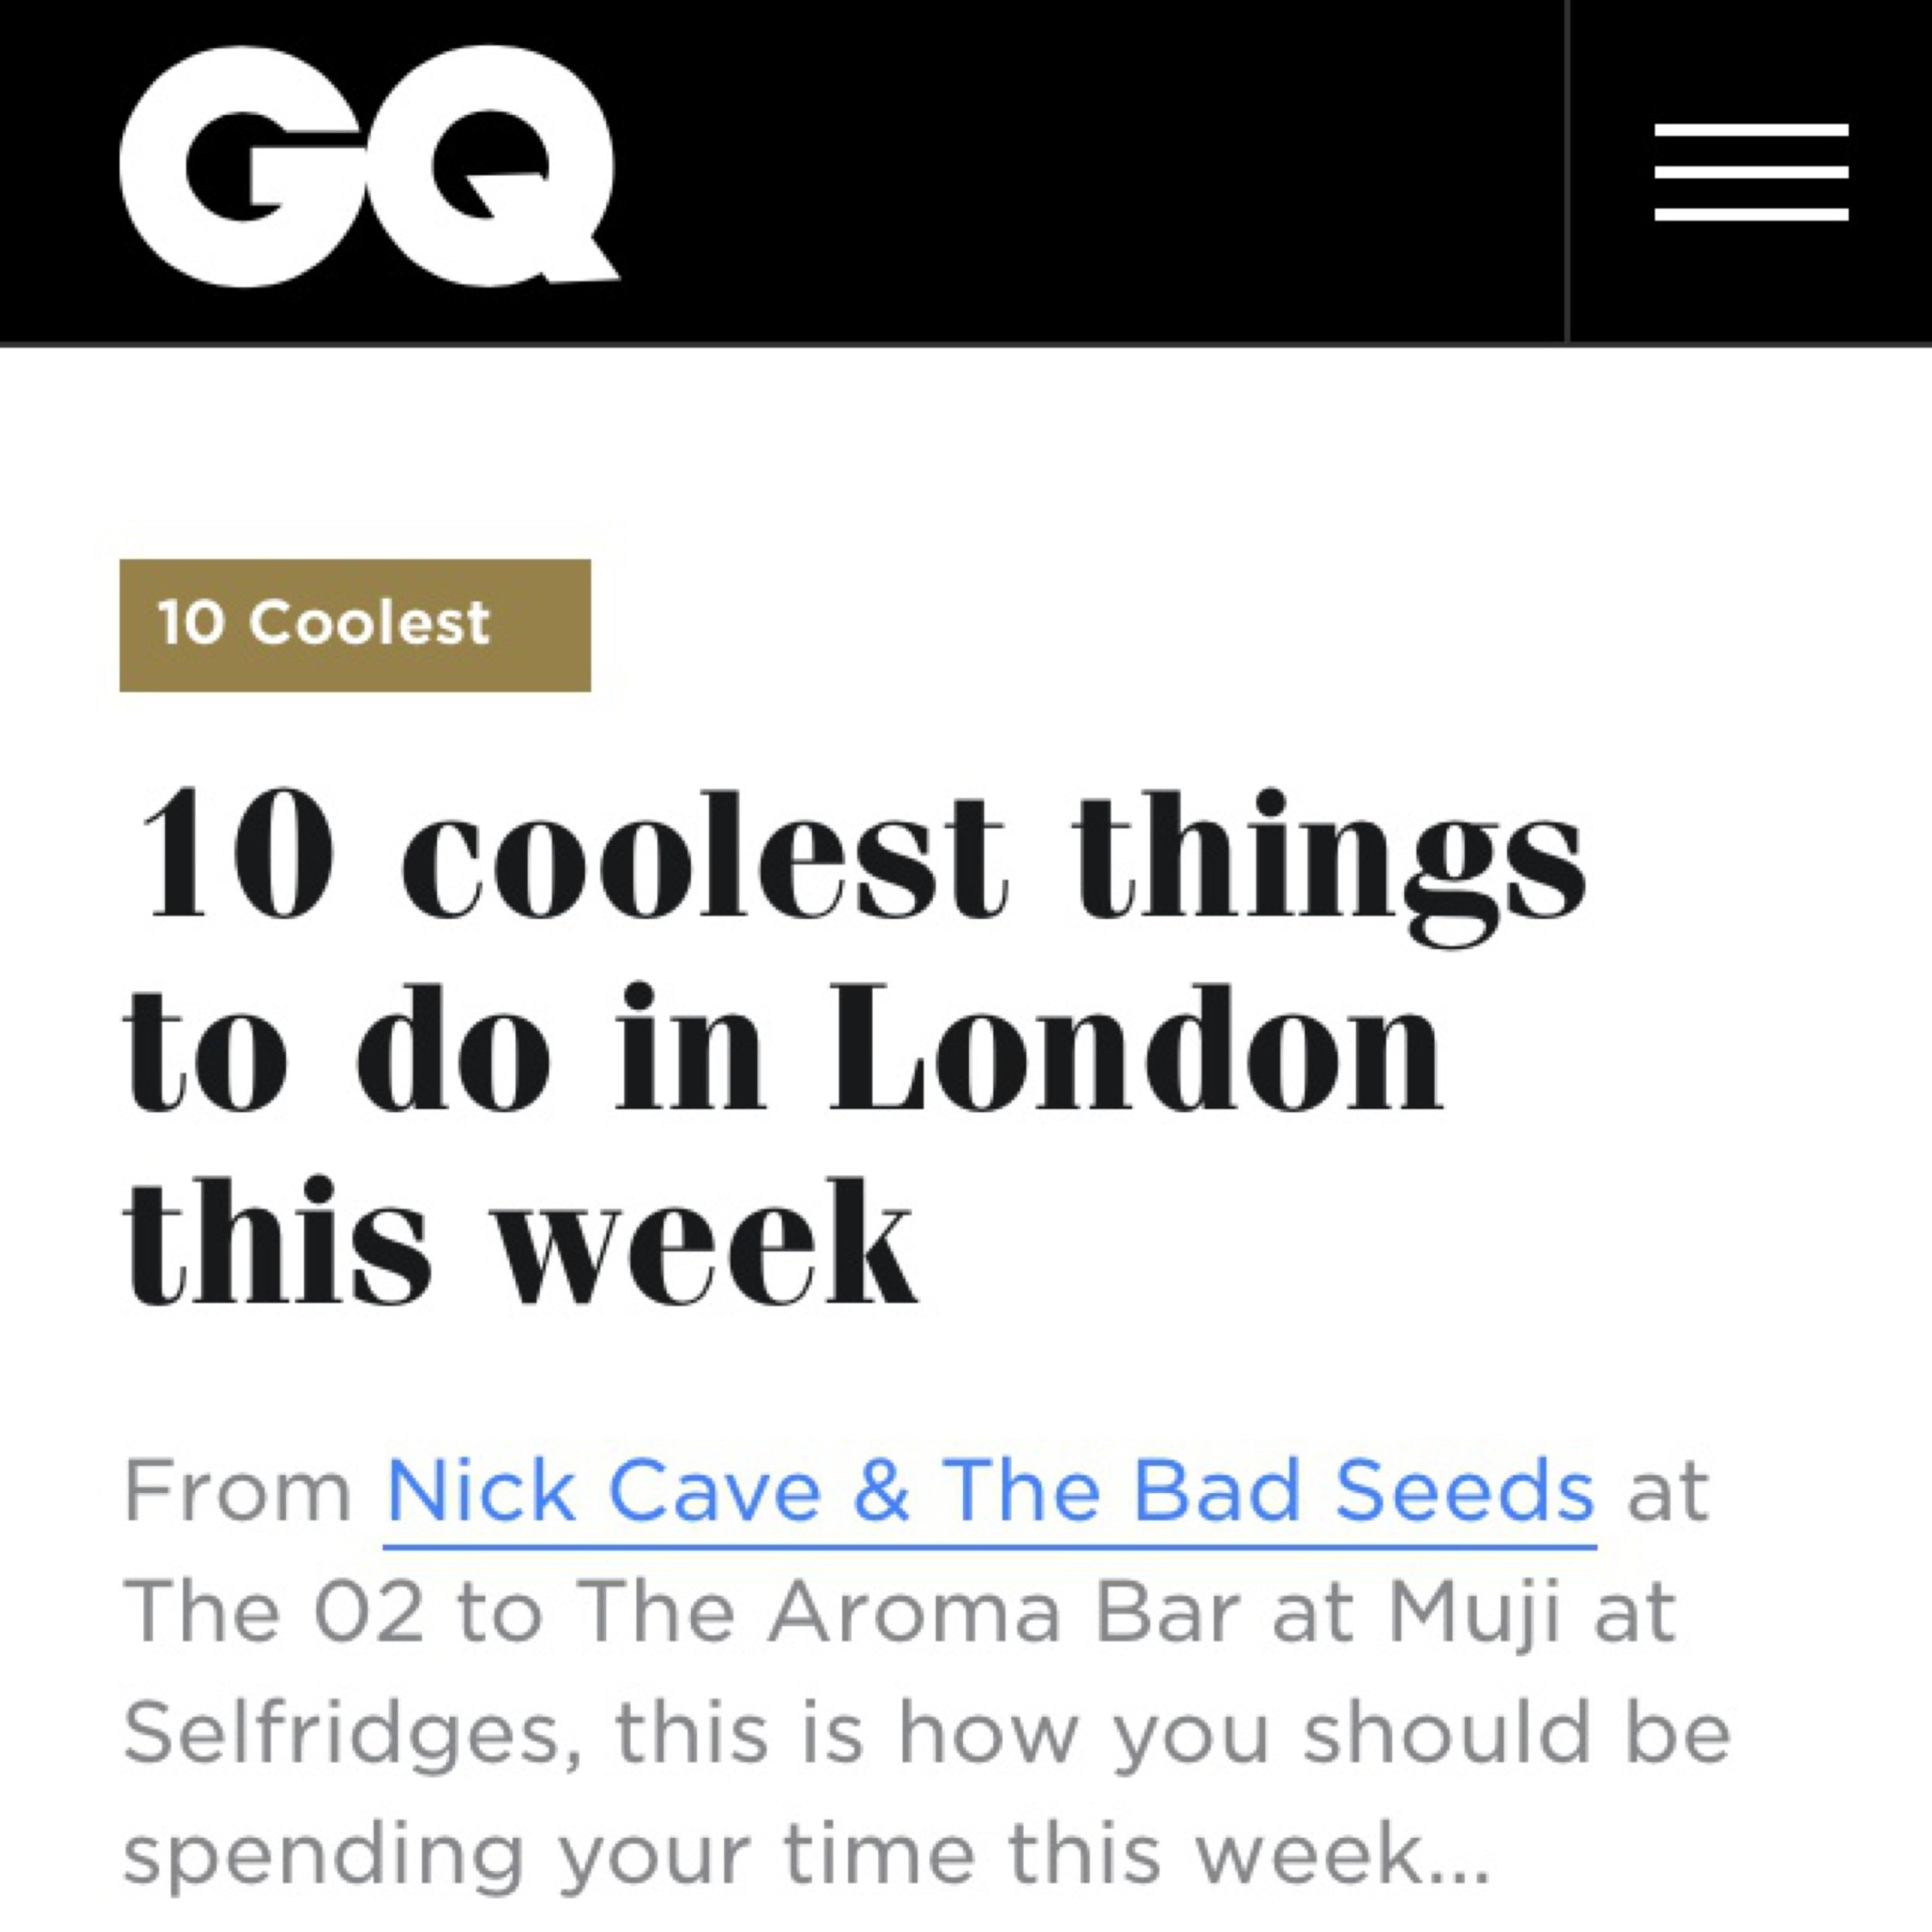 - Manifesto was in the GQ 10 coolest things to do in London, 25th September 2017.